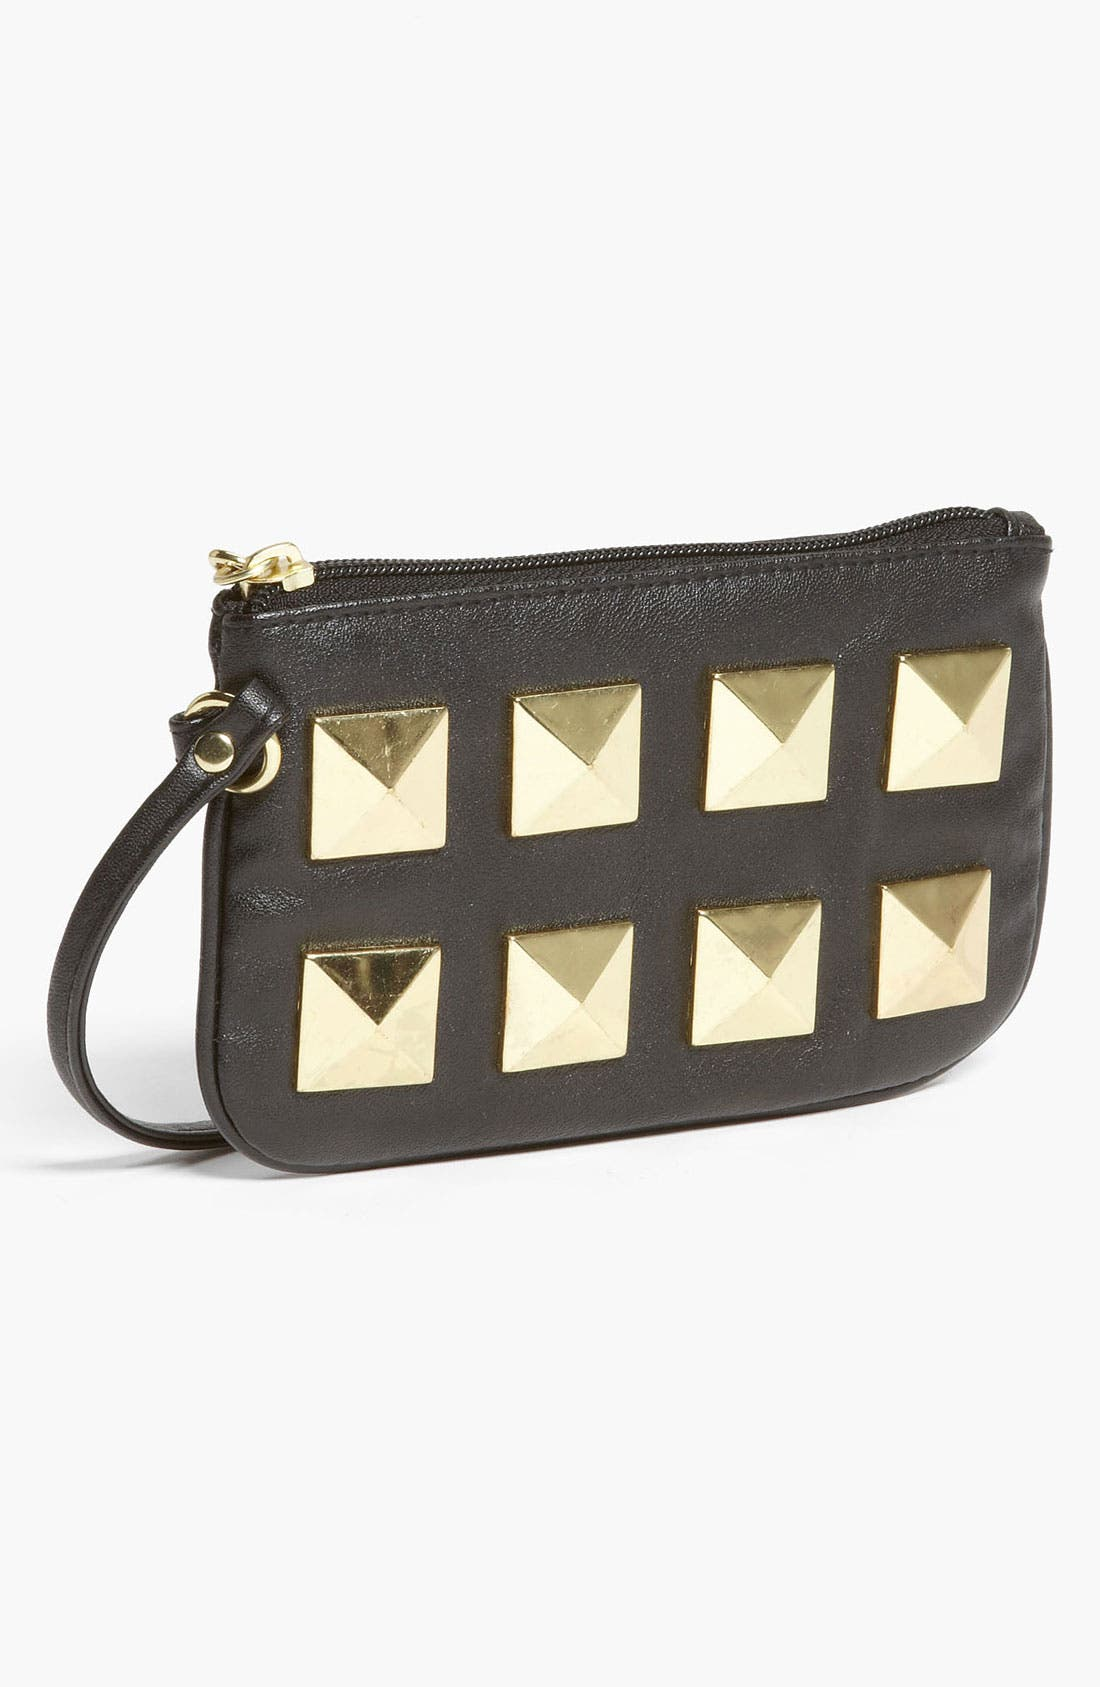 Alternate Image 1 Selected - Lulu Studded Wristlet